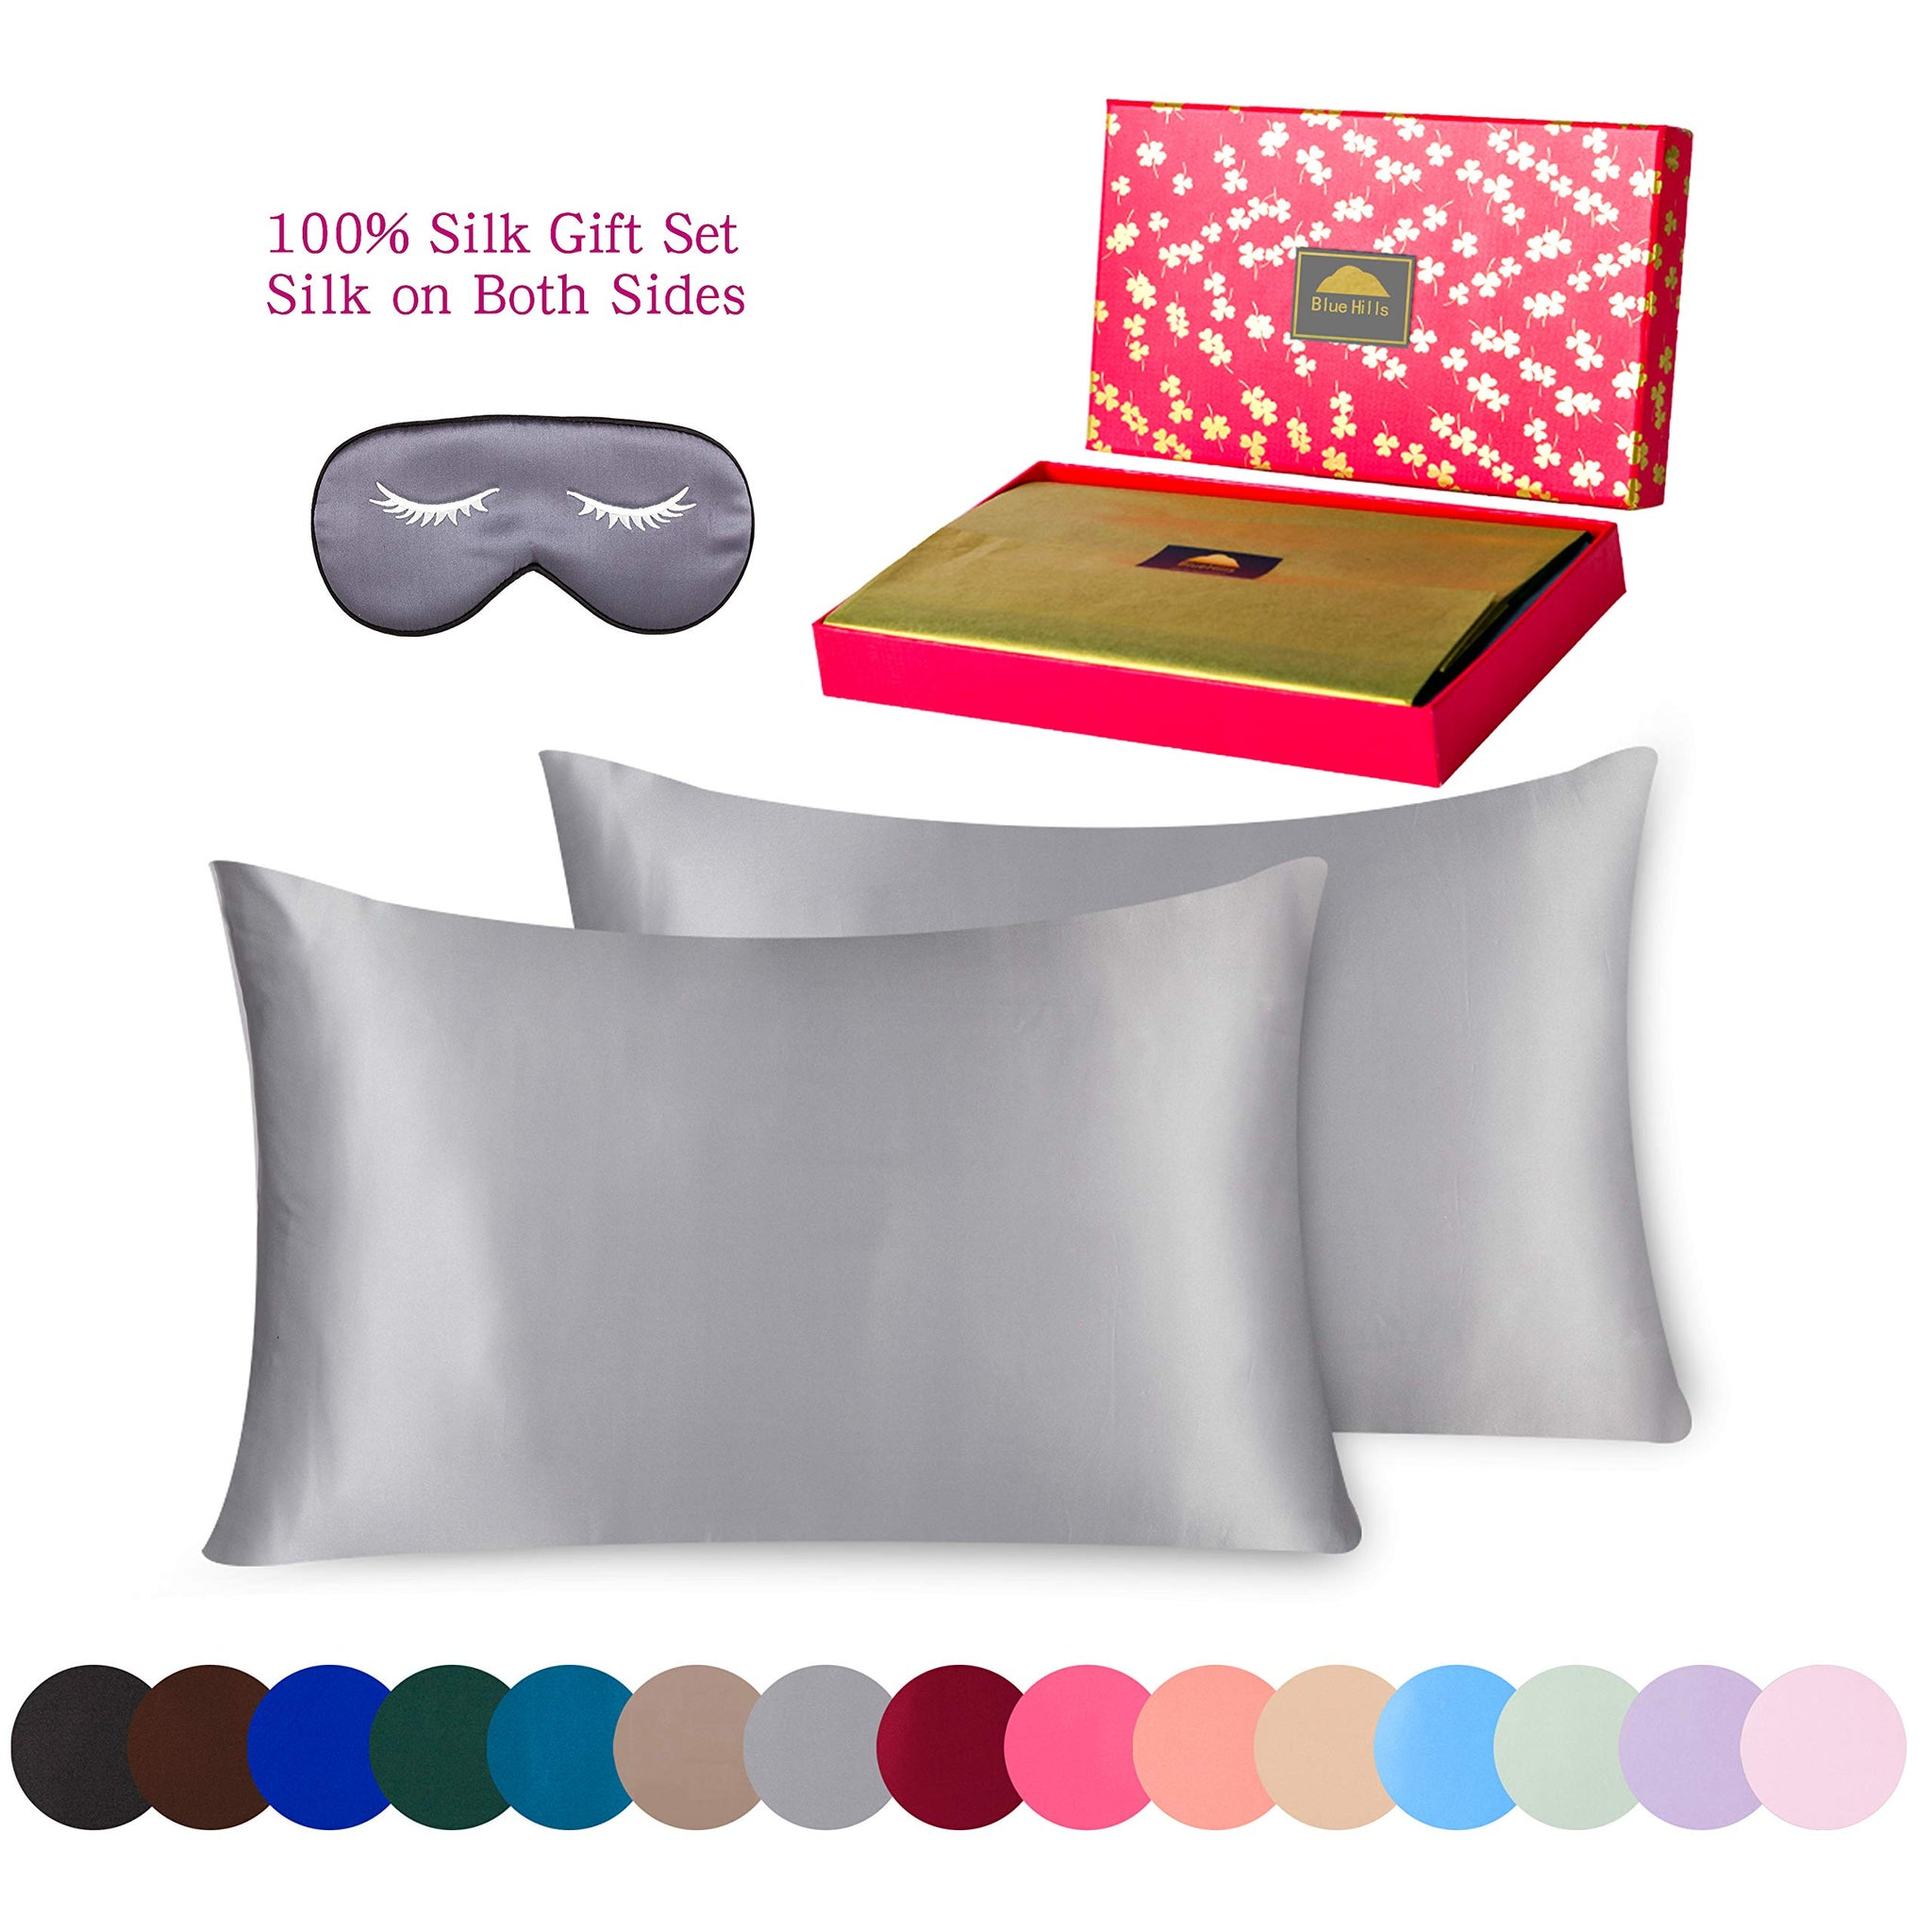 BlueHills 3 Piece Luxury Silk Gift Set 100% Pure Mulberry Natural Soft Both Sides Silk Pillowcase 2 Pack for Hair and Skin Hidden Zipper & Pure Silk Eye Mask in Gift Box Silver Grey, Standard, S019